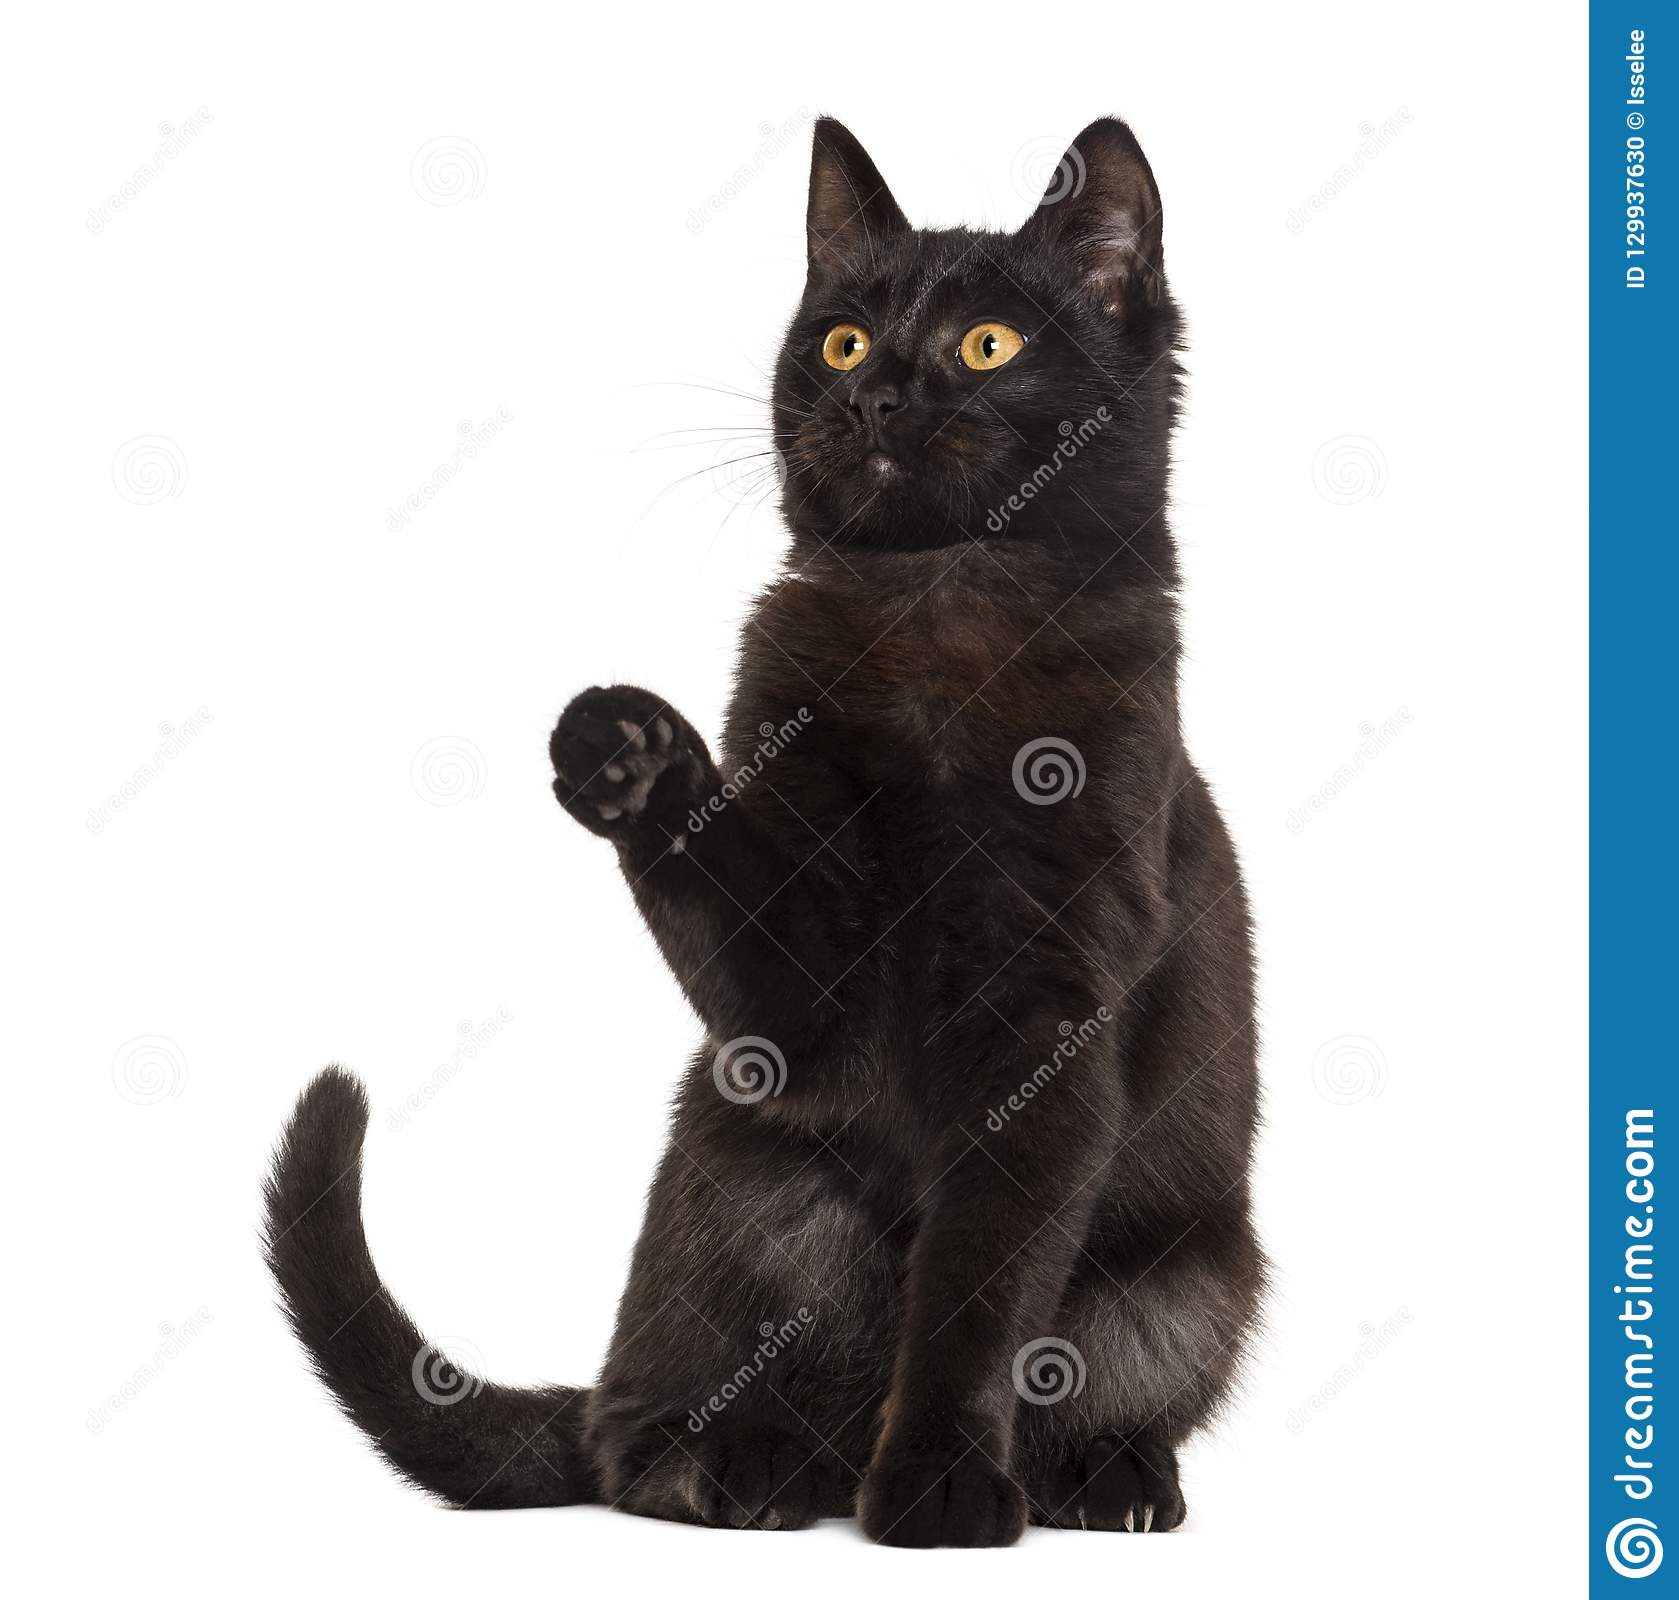 Black cat pawing in front of a white background